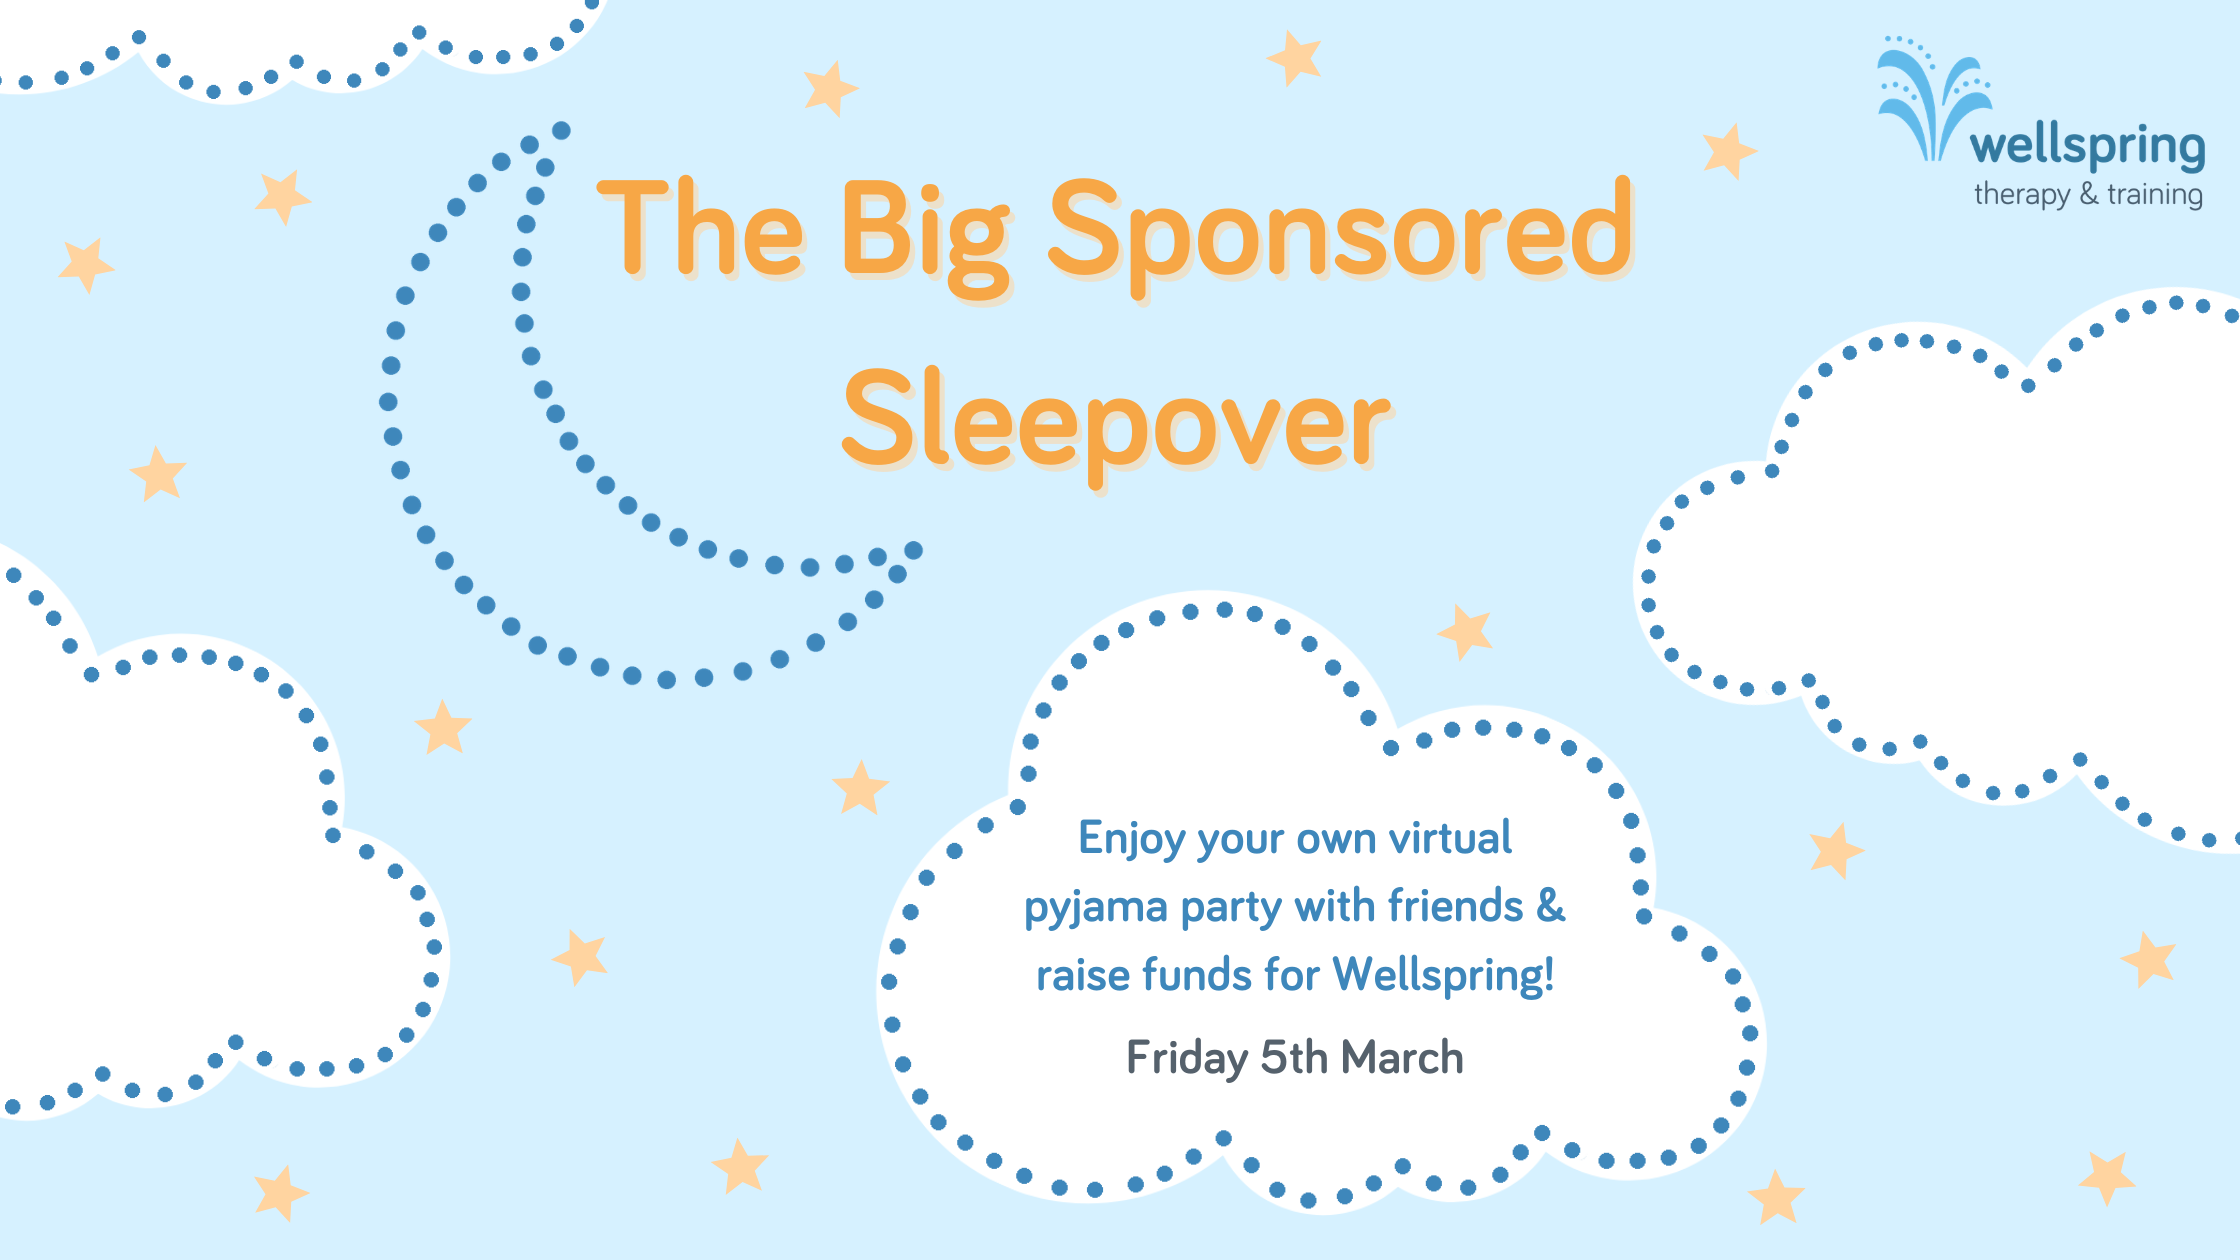 The Big Sponsored Sleepover for Wellspring